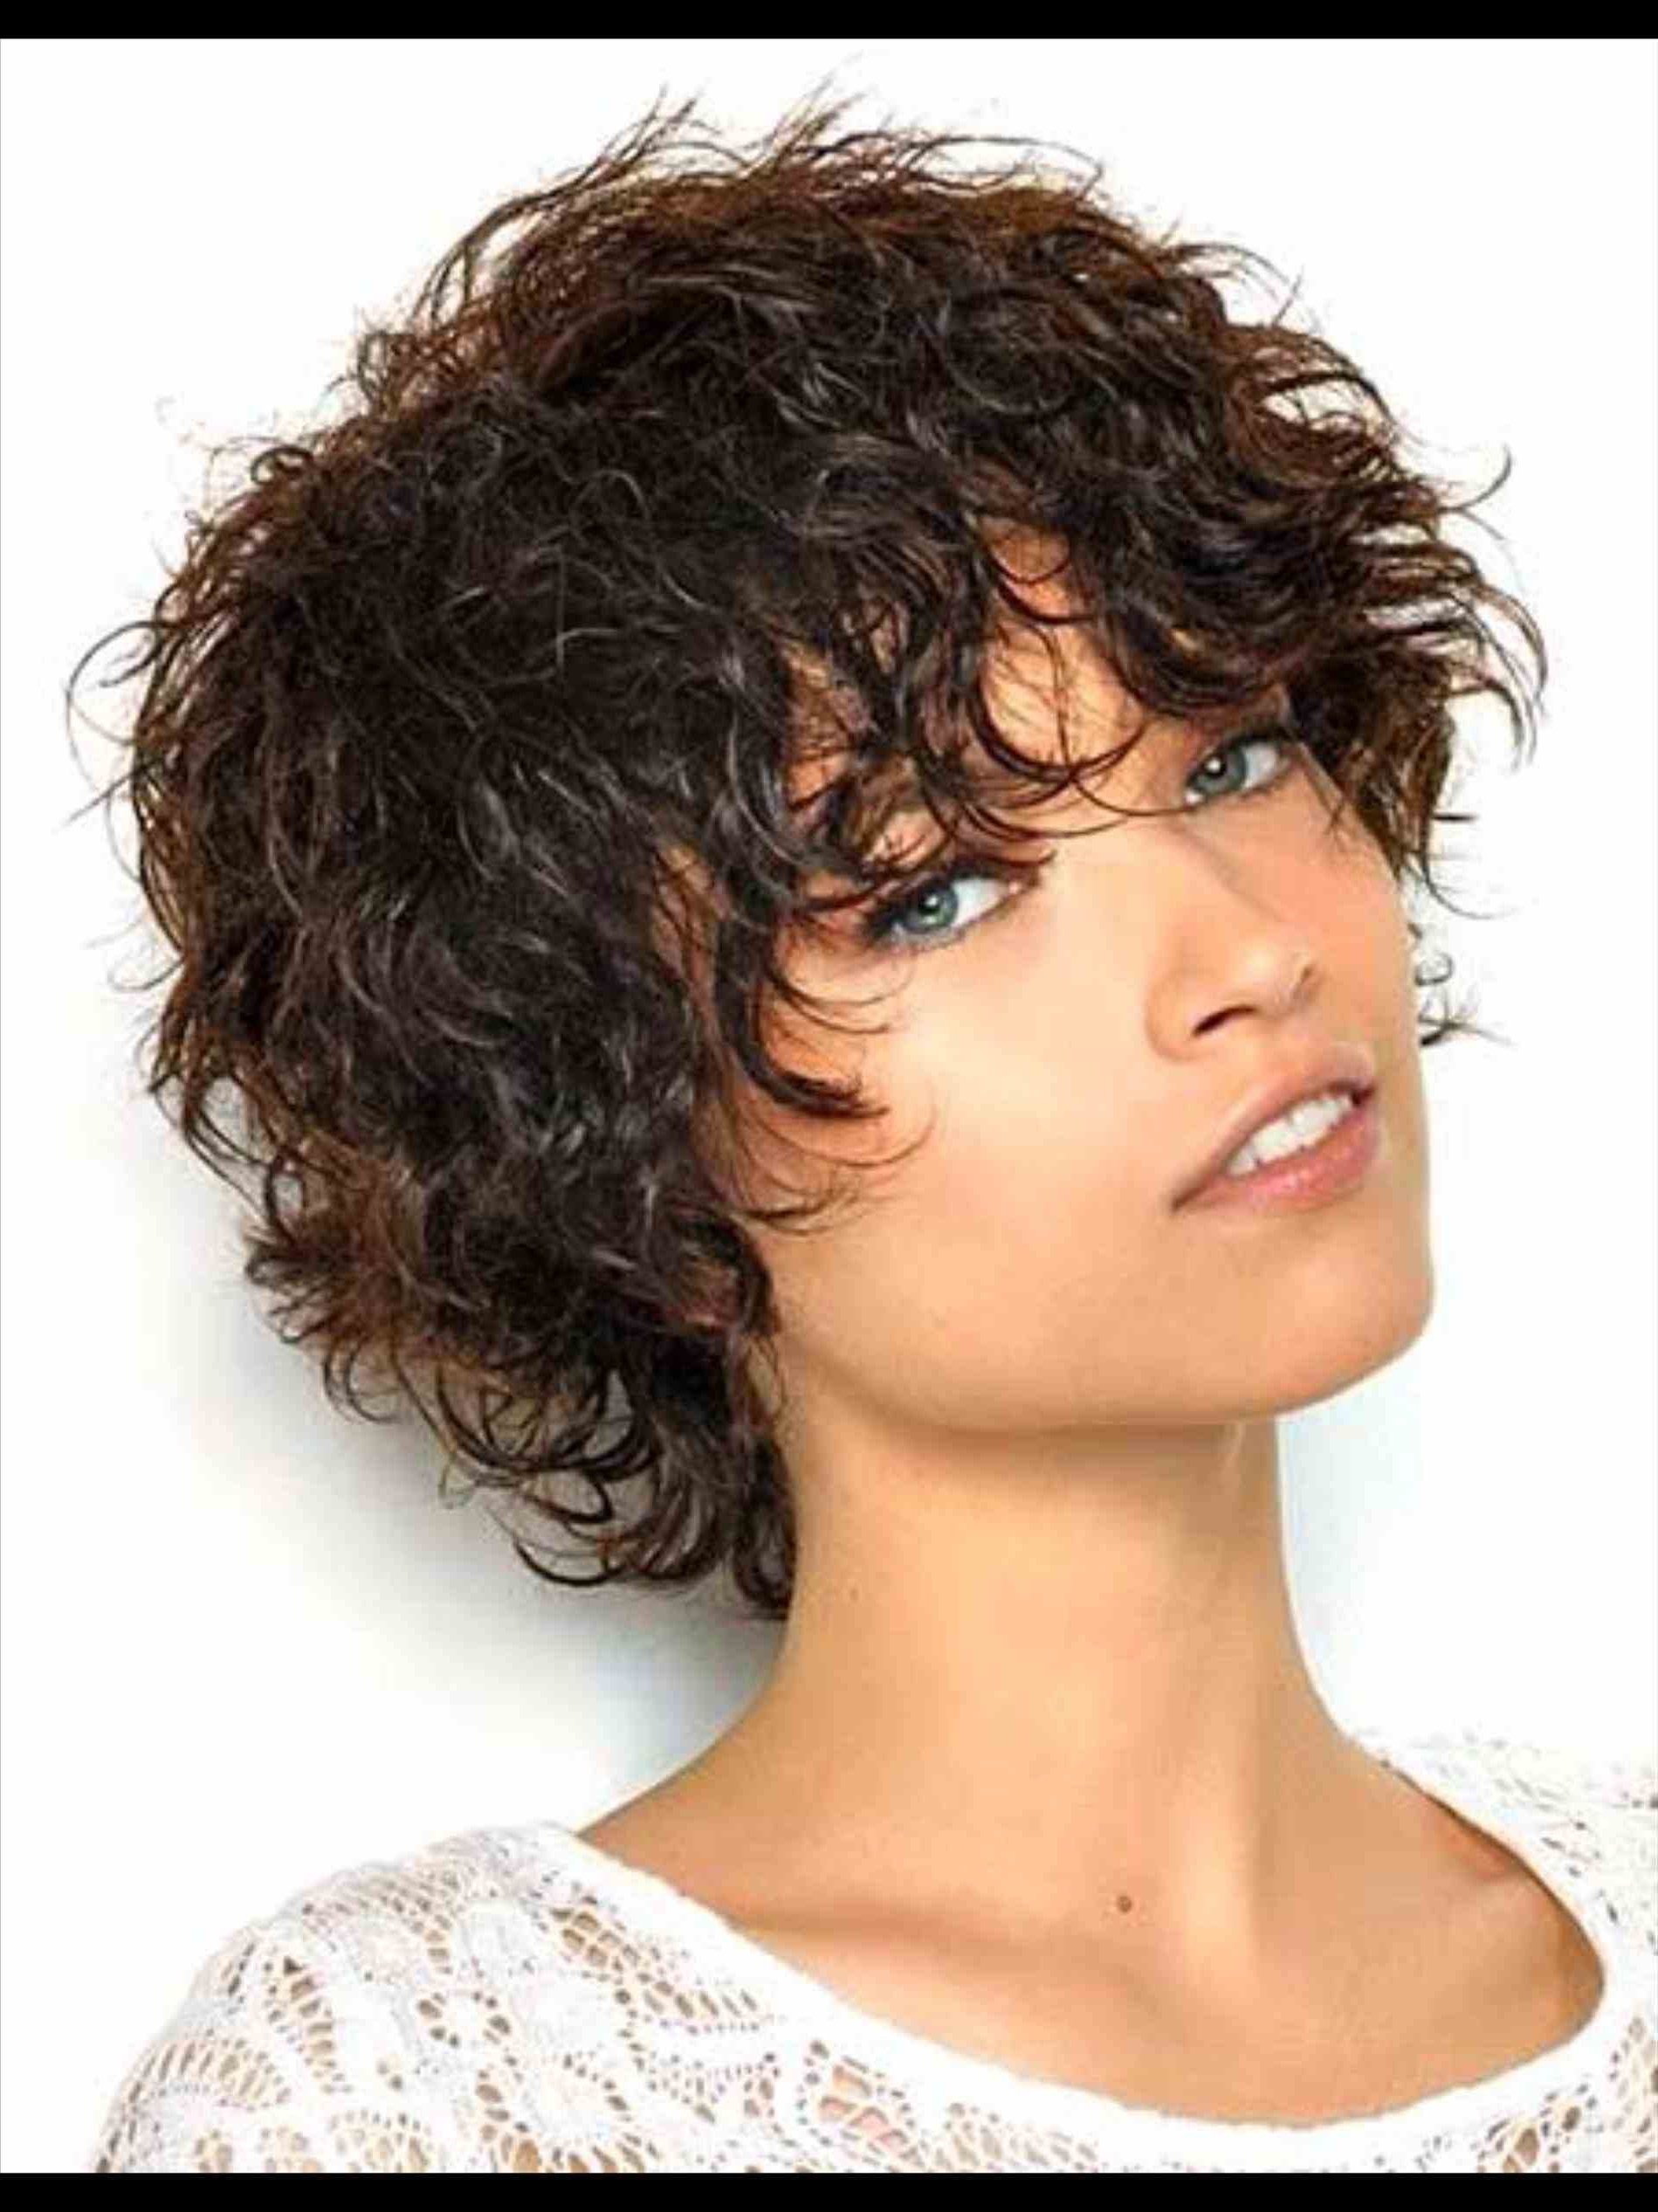 Styles Undercut Style Collections Cute Short Curly Hair Tumblr Of For Short Curly Hairstyles Tumblr (View 15 of 25)